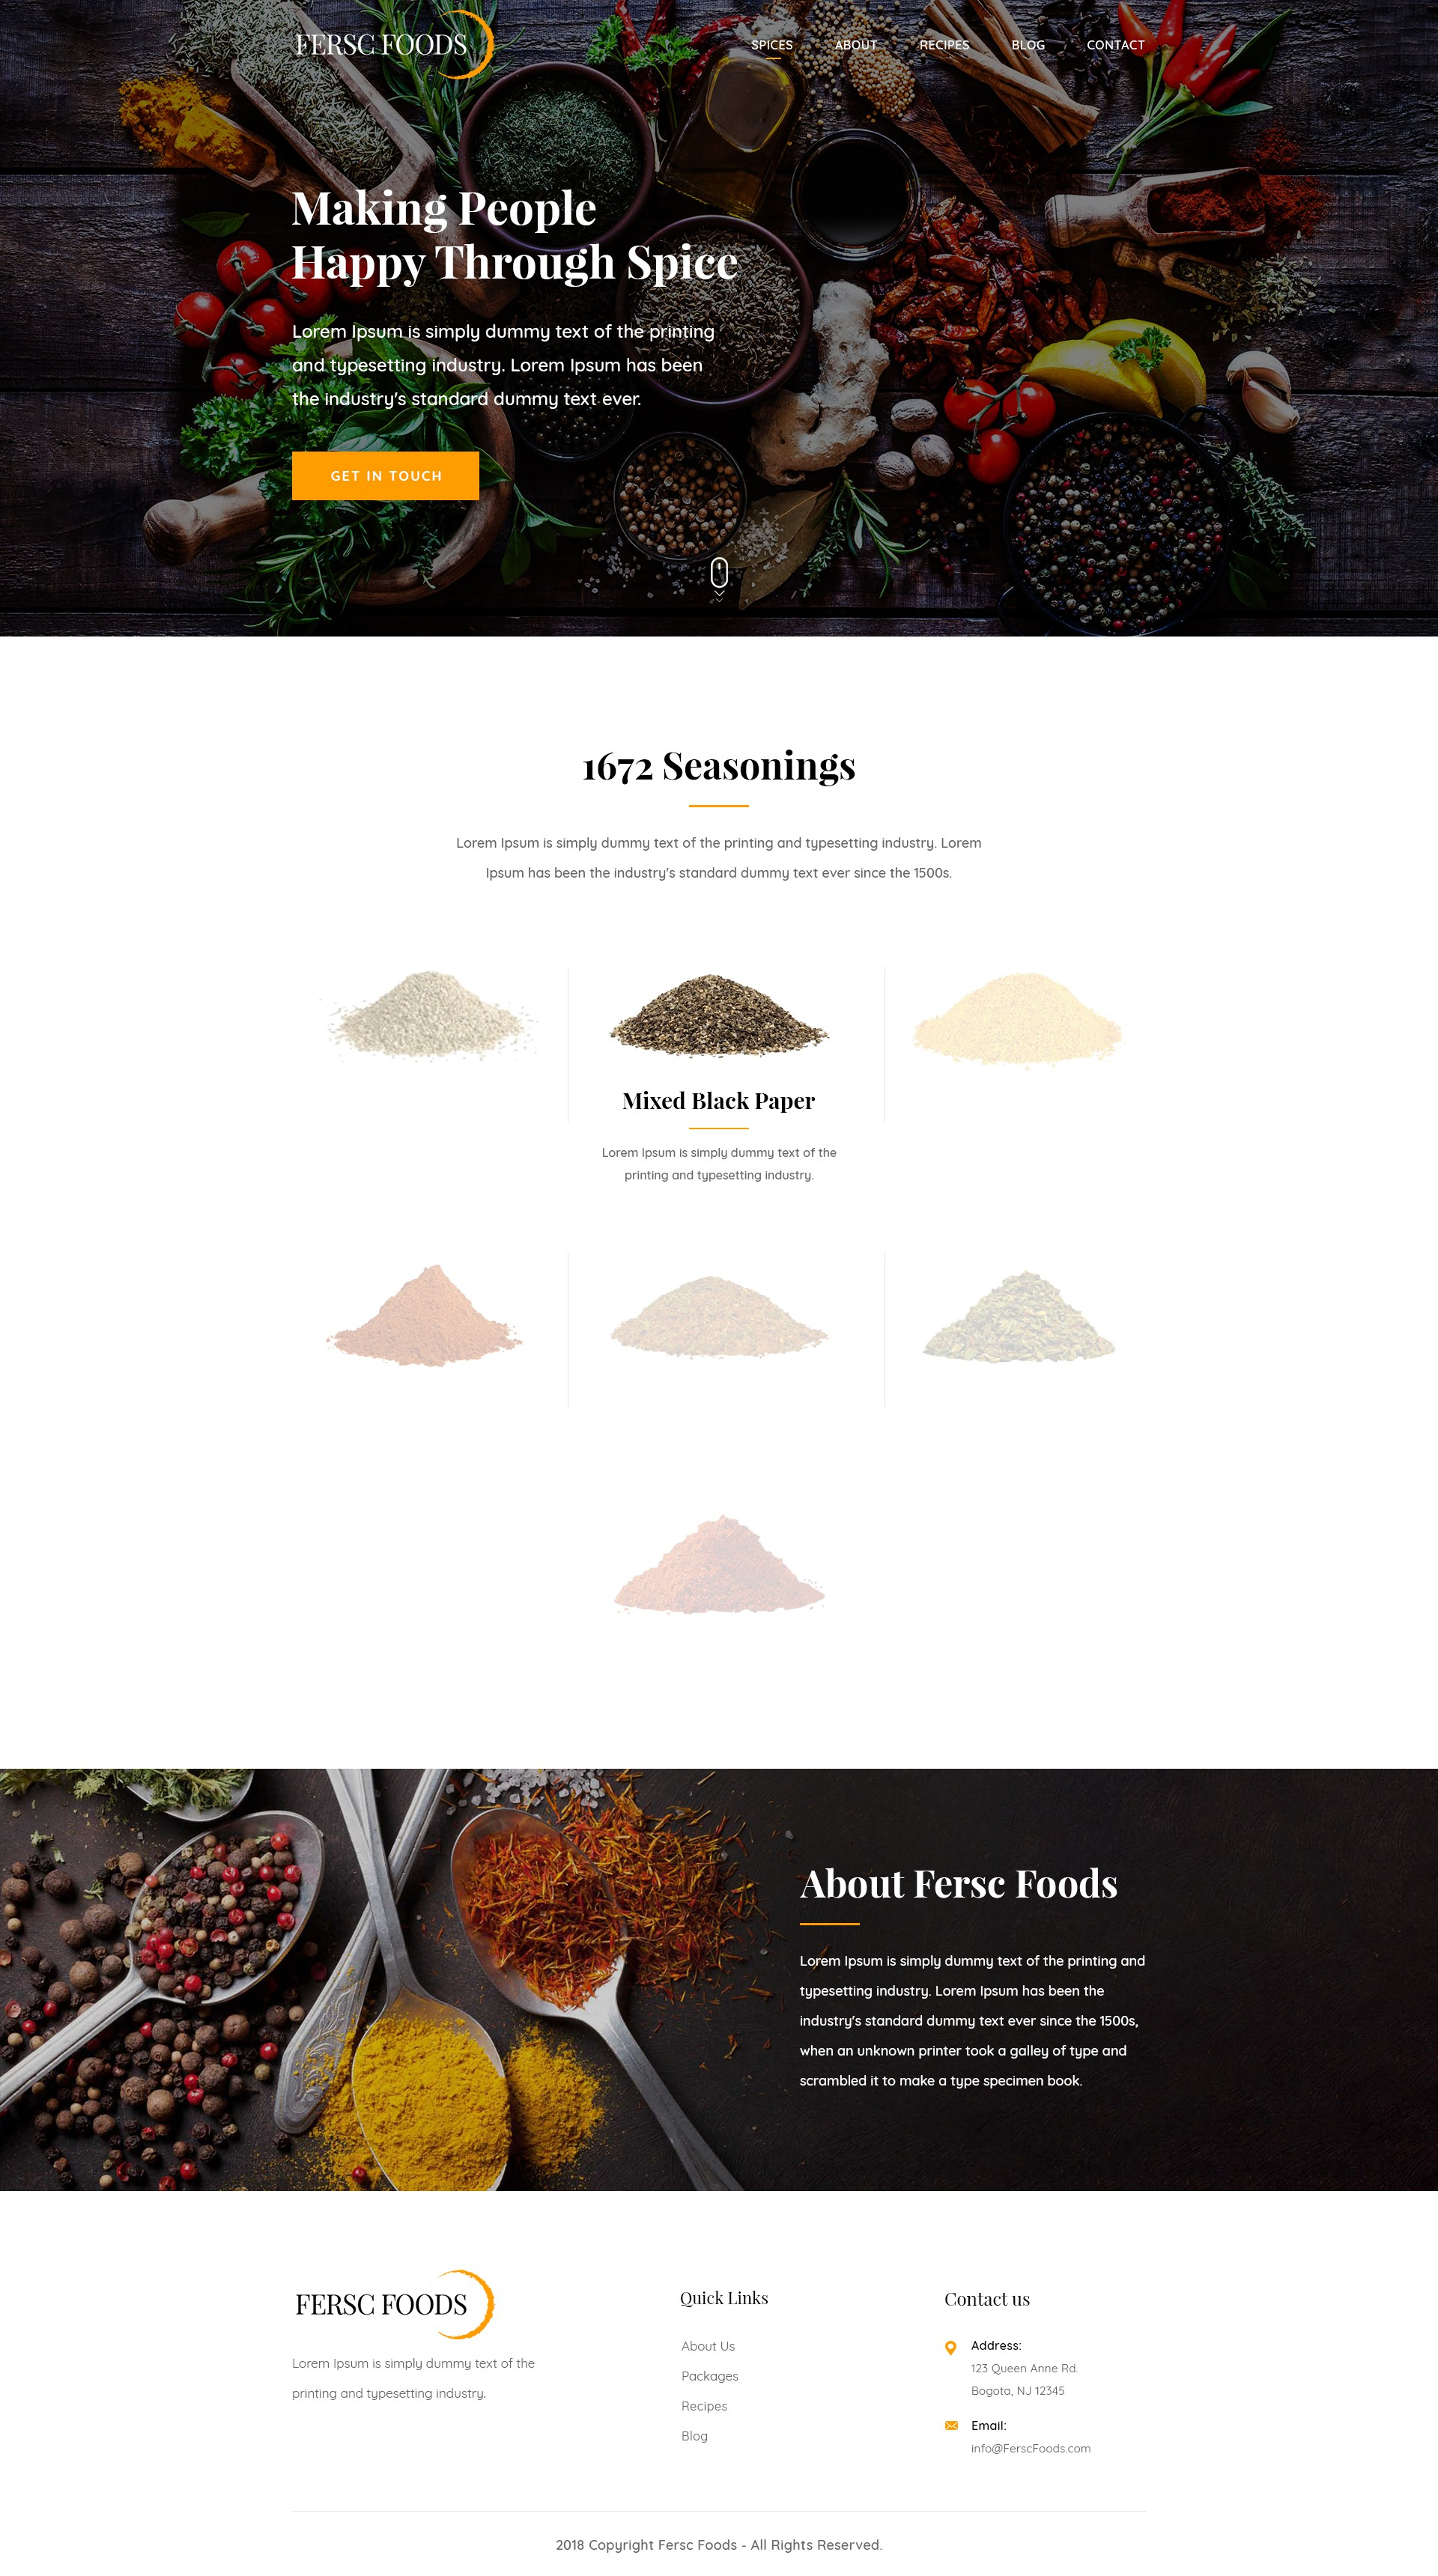 simple website for a food/seasoning company